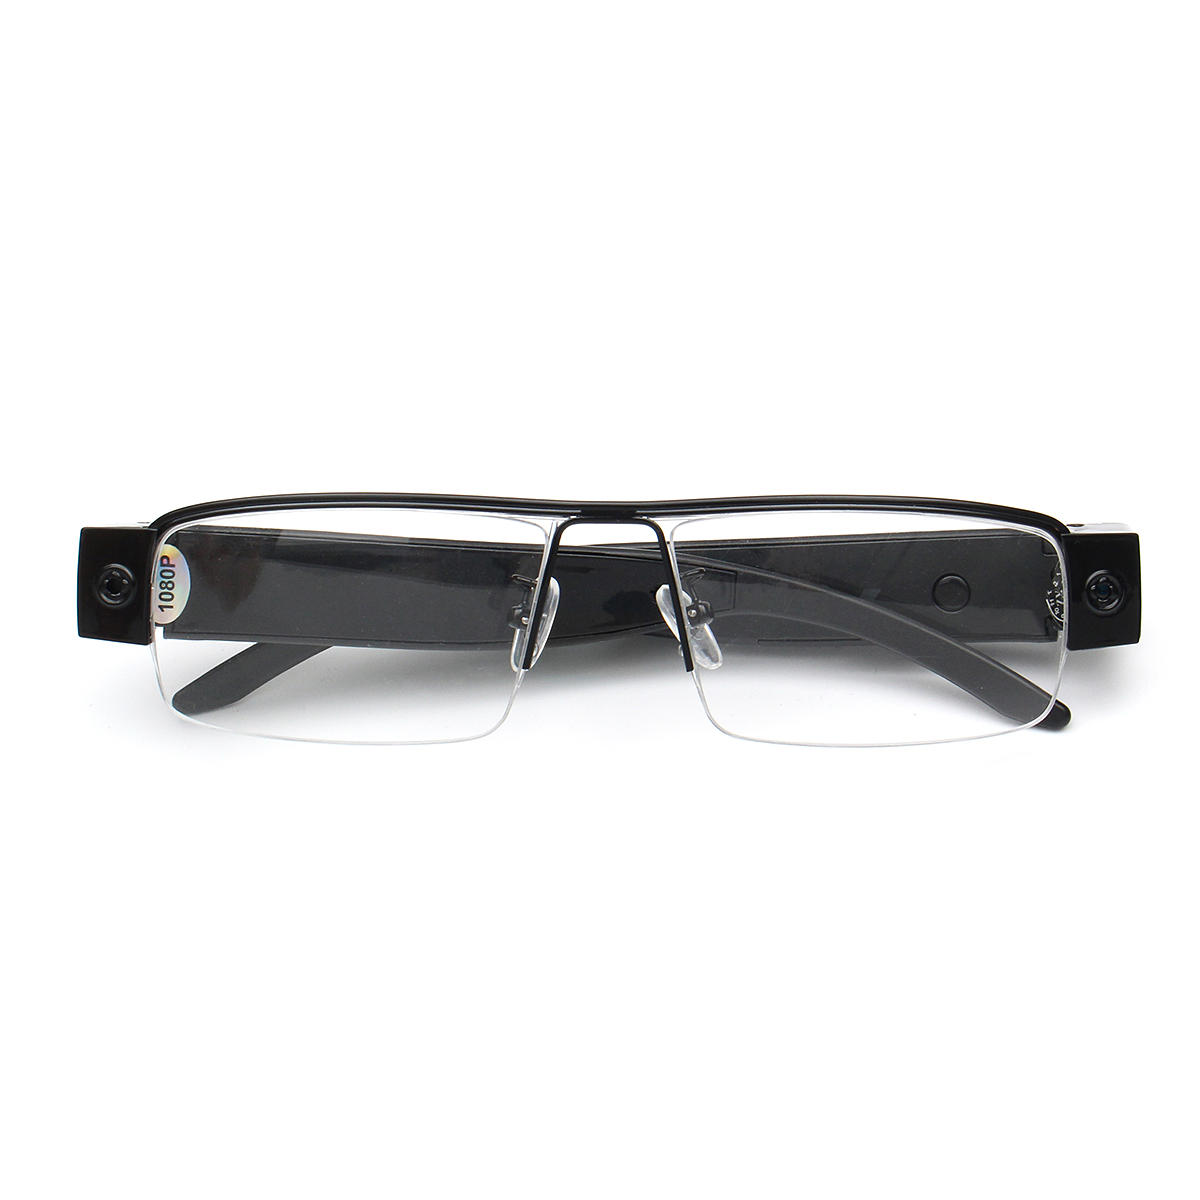 079014dad0 1080P HD Hidden Camera Eyewear Security Video Recorder DVR Glasses  Camcorder for PC Laptop COD